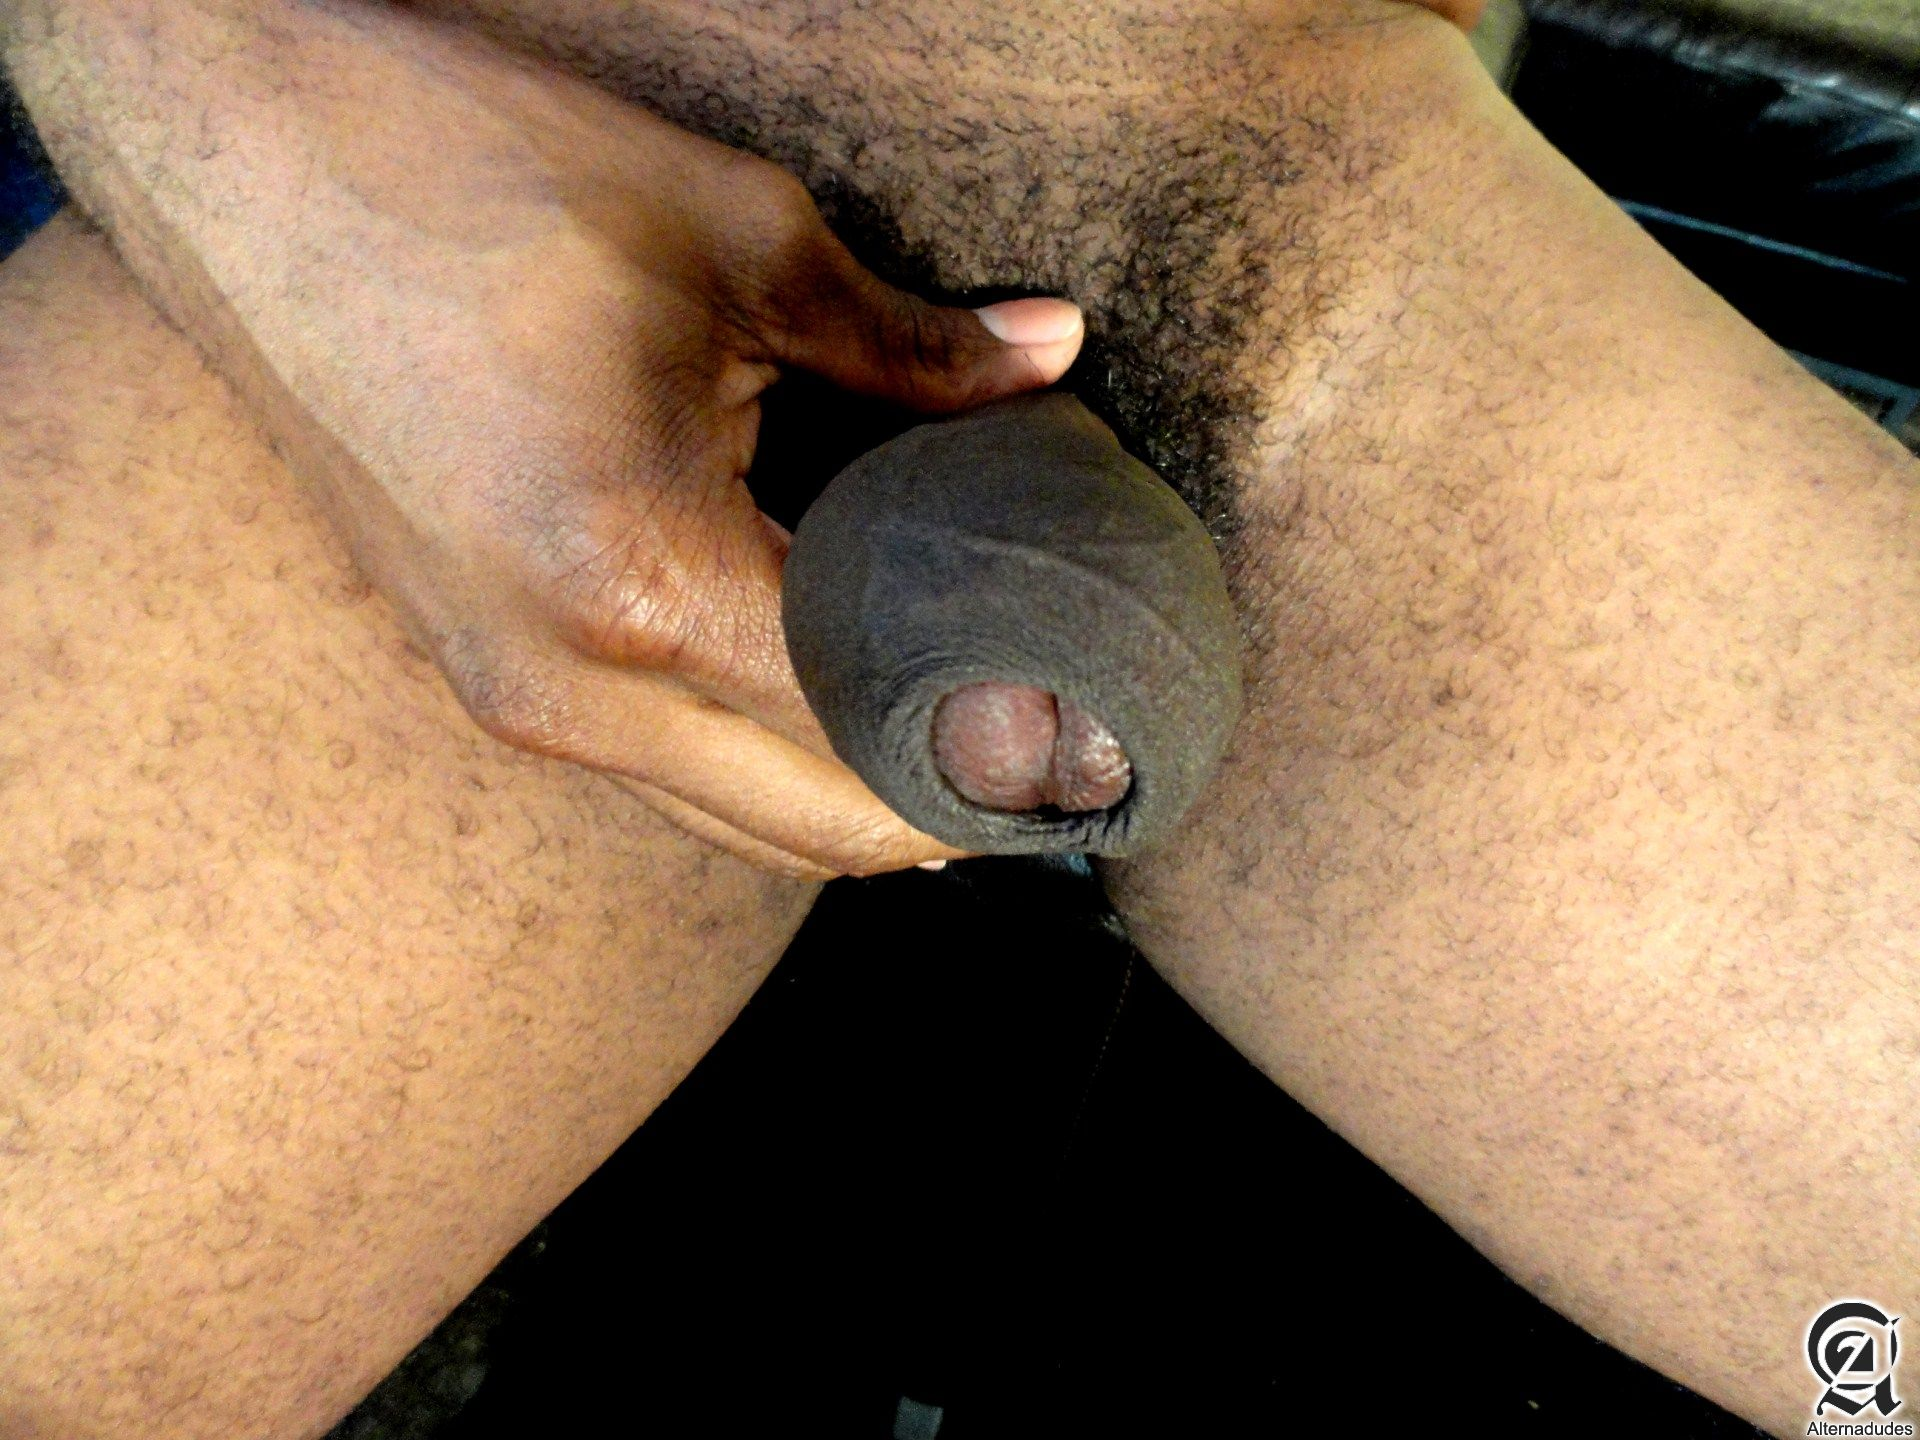 Alternadudes Kamrun big black uncut cock with cum 06 Sexy Amateur Black Hipster with a Huge Uncut Black Cock Shoots A Load